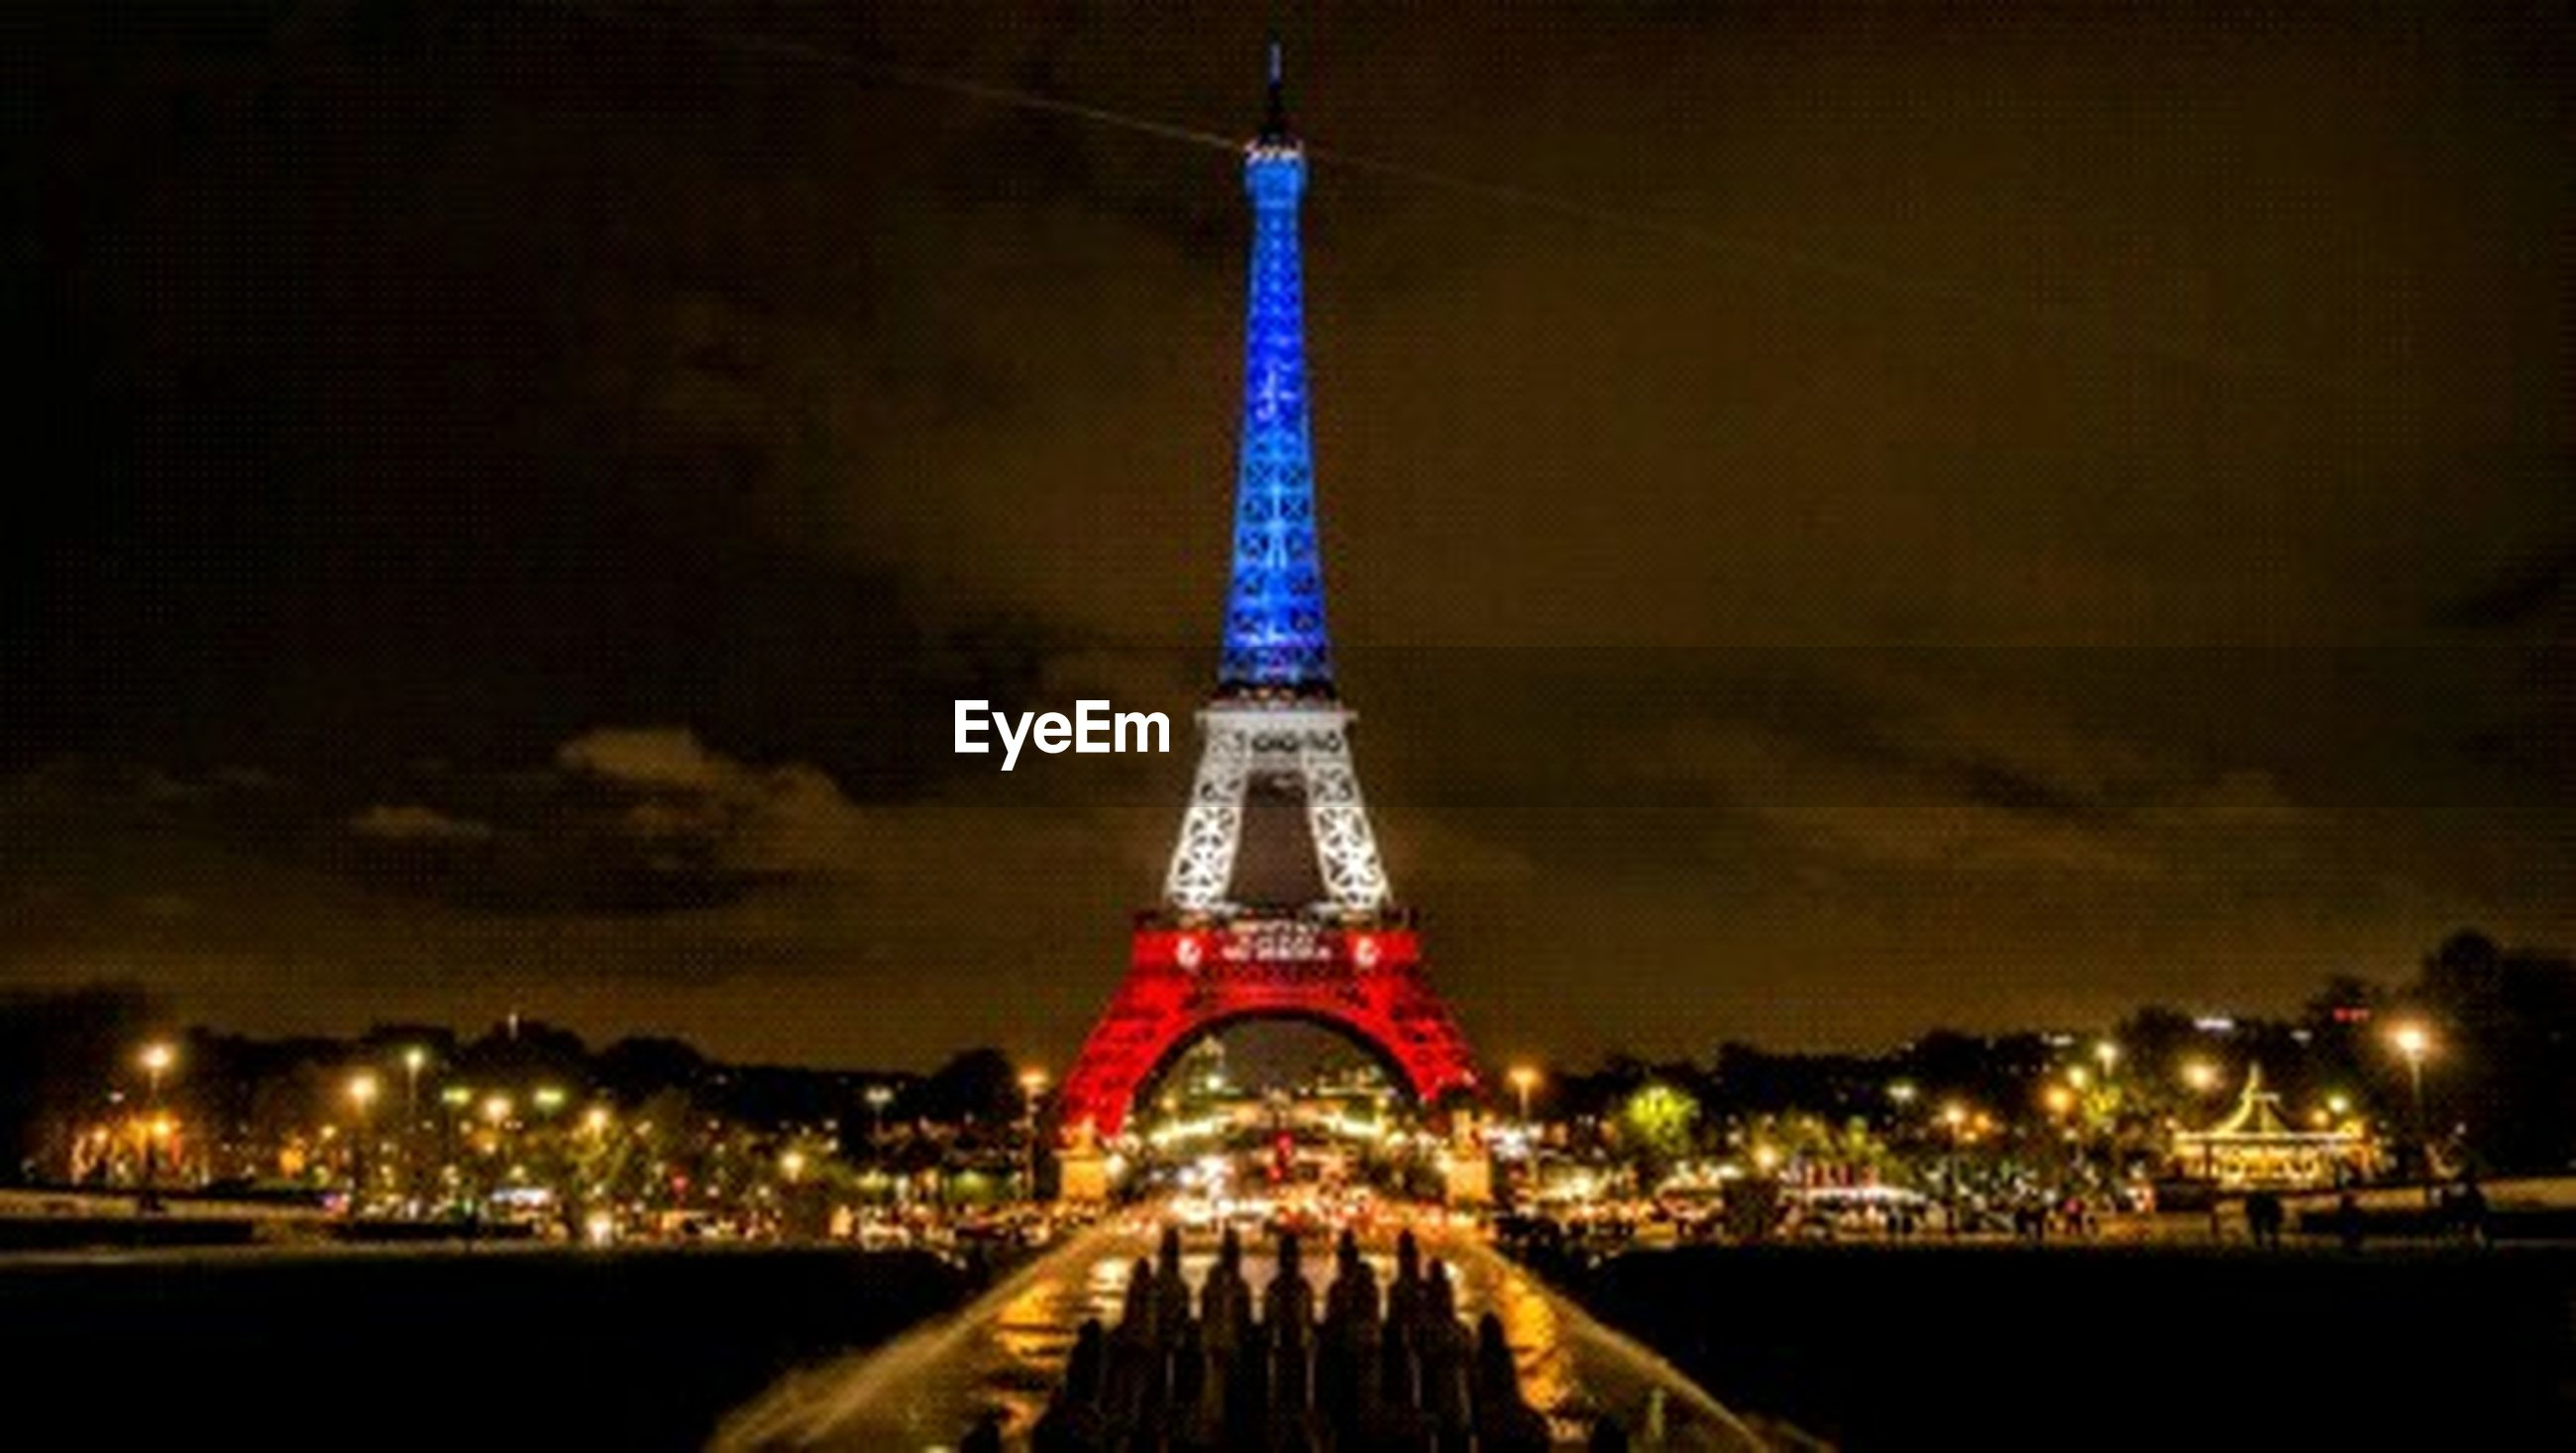 illuminated, built structure, night, architecture, famous place, international landmark, travel destinations, capital cities, tourism, city, tower, tall - high, sky, eiffel tower, travel, building exterior, dusk, engineering, connection, metal